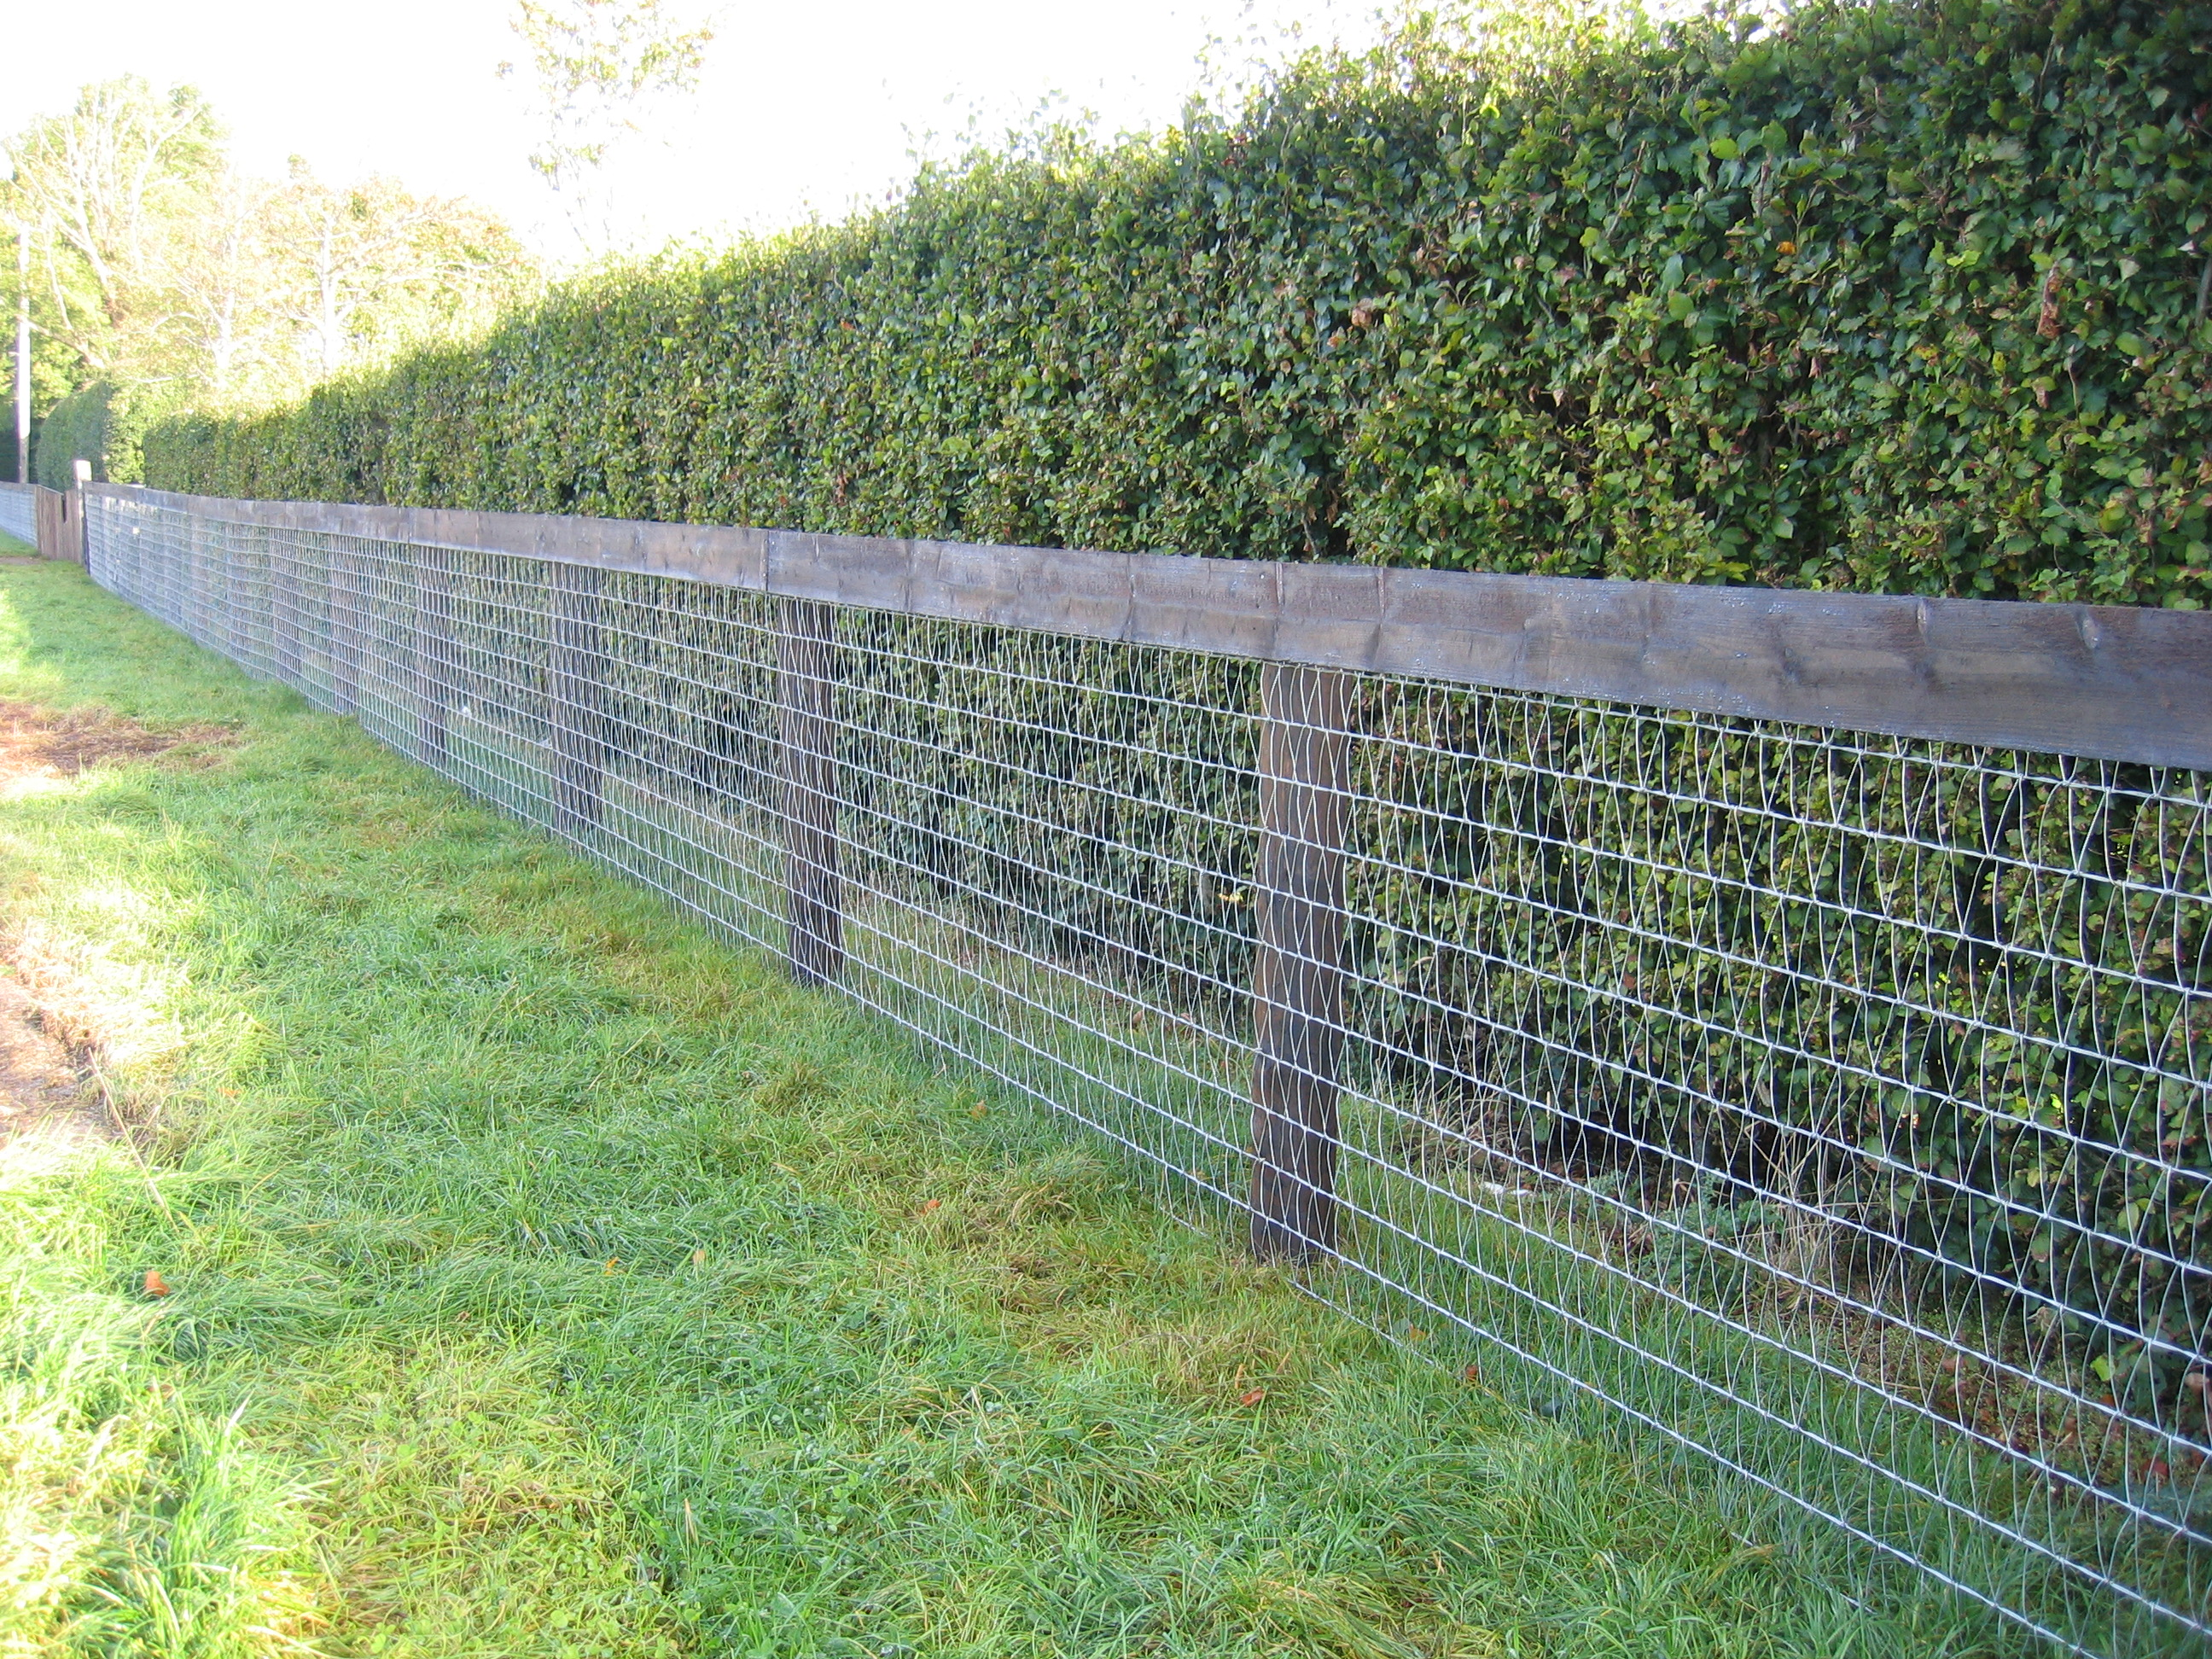 Barb Wire - Florida Fence Post Company, Inc.